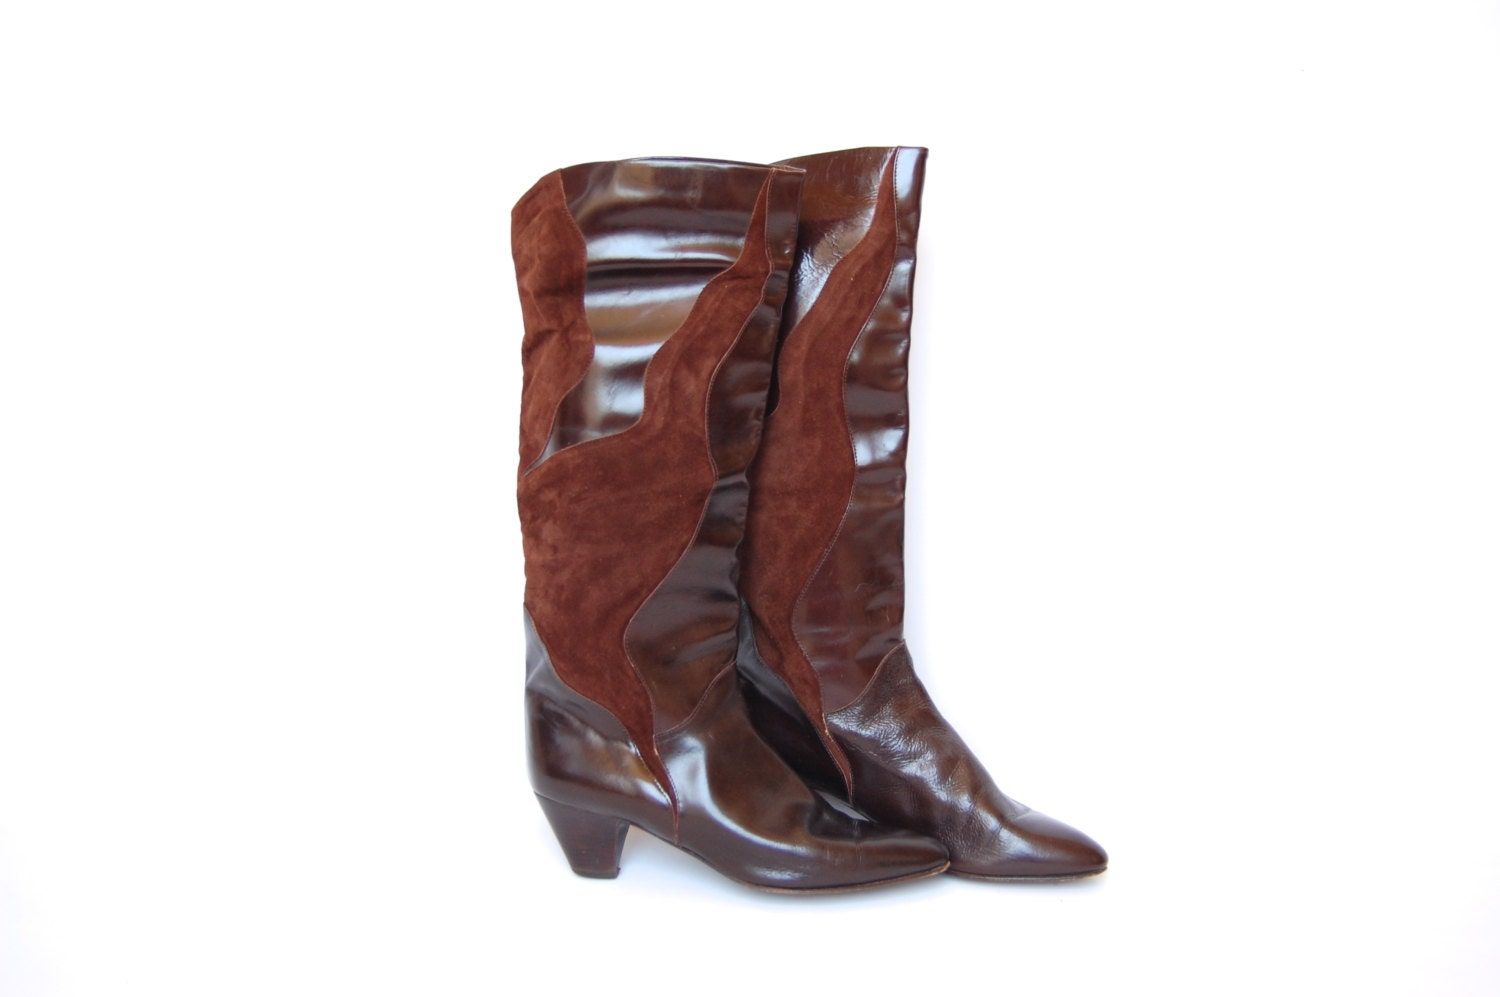 brown suede and leather heel boots 9 5 by